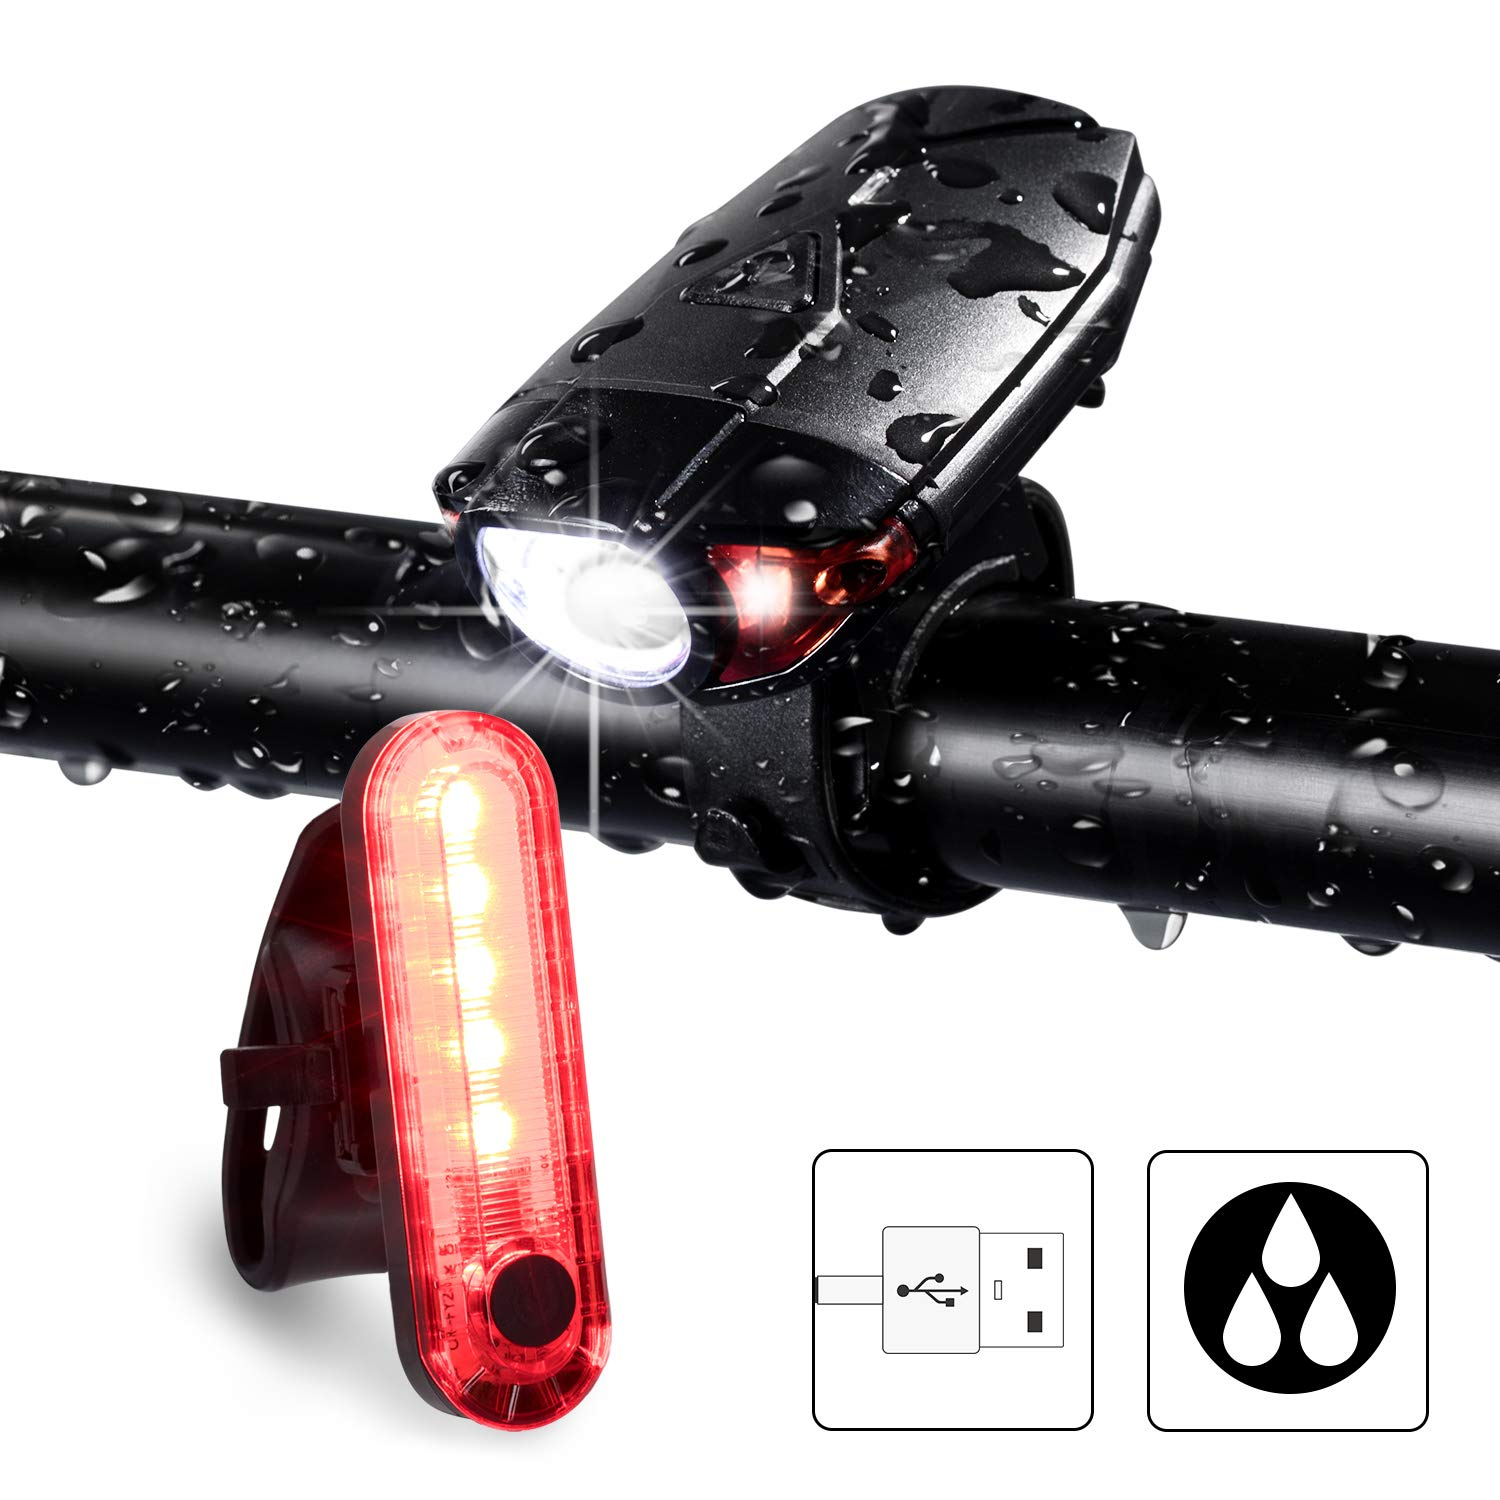 Bright Bicycle L Bike Lights Set of Four FX FFEXS Bike Lights Front and Back